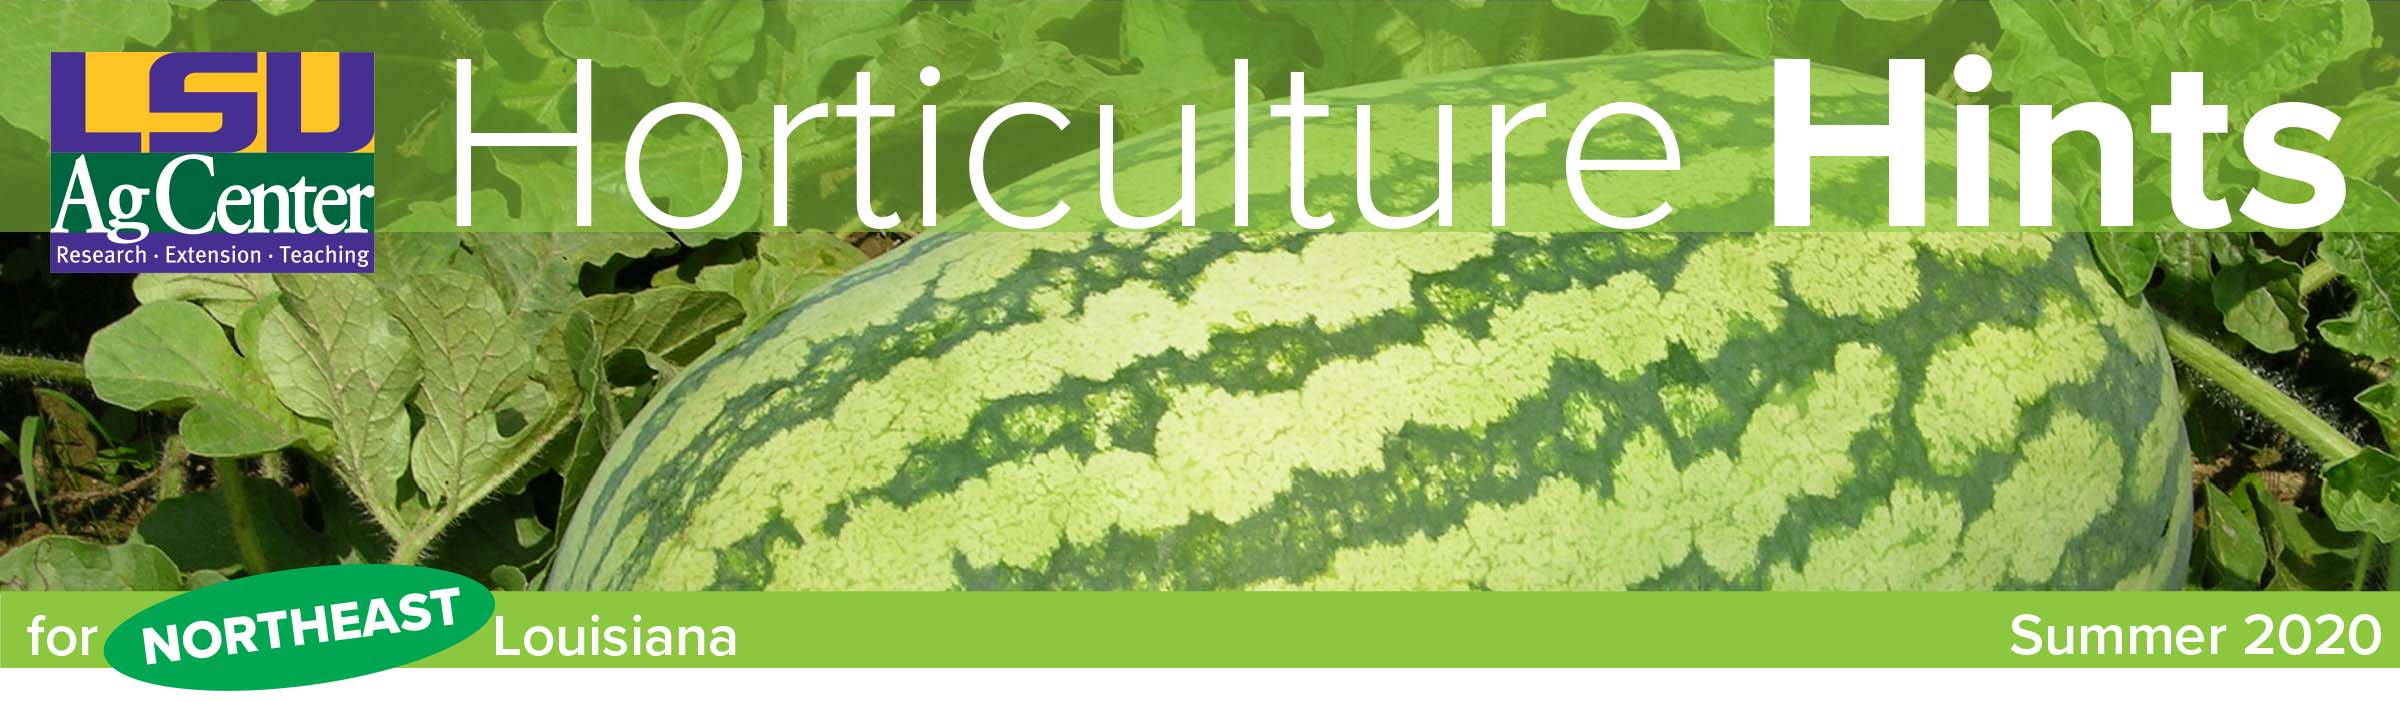 Banner for Horticulture Hints summer 2020.